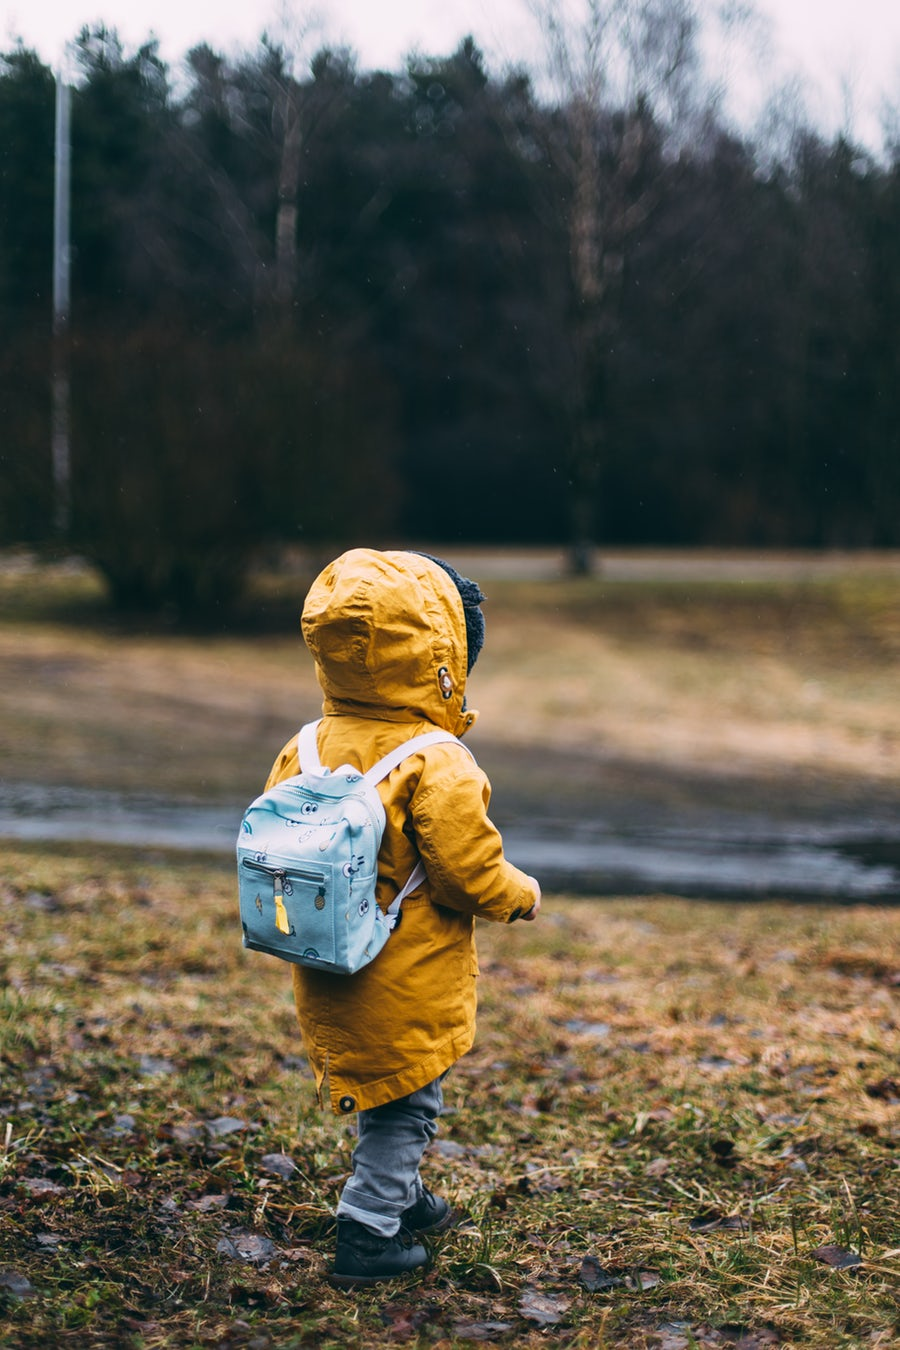 Leaving the House with Children in Tow…It's Hard